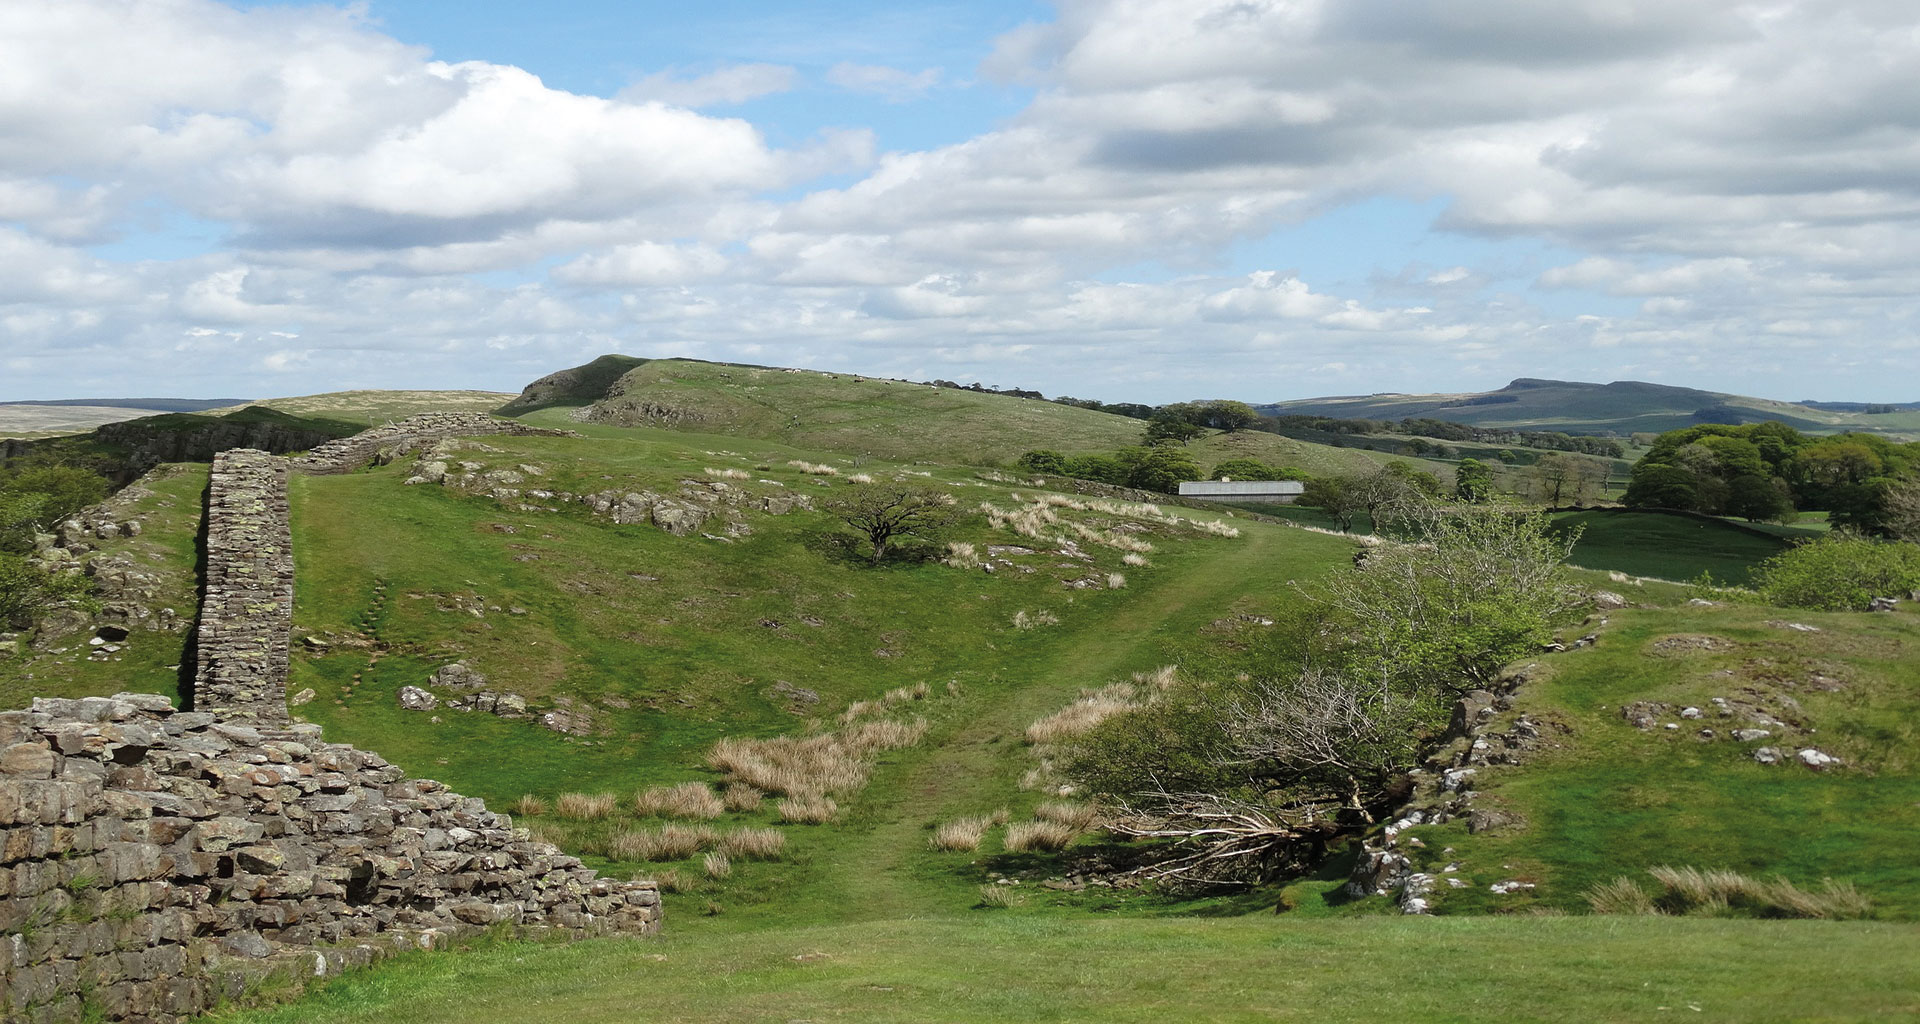 HADRIAN'S WALL, EDINBURGH